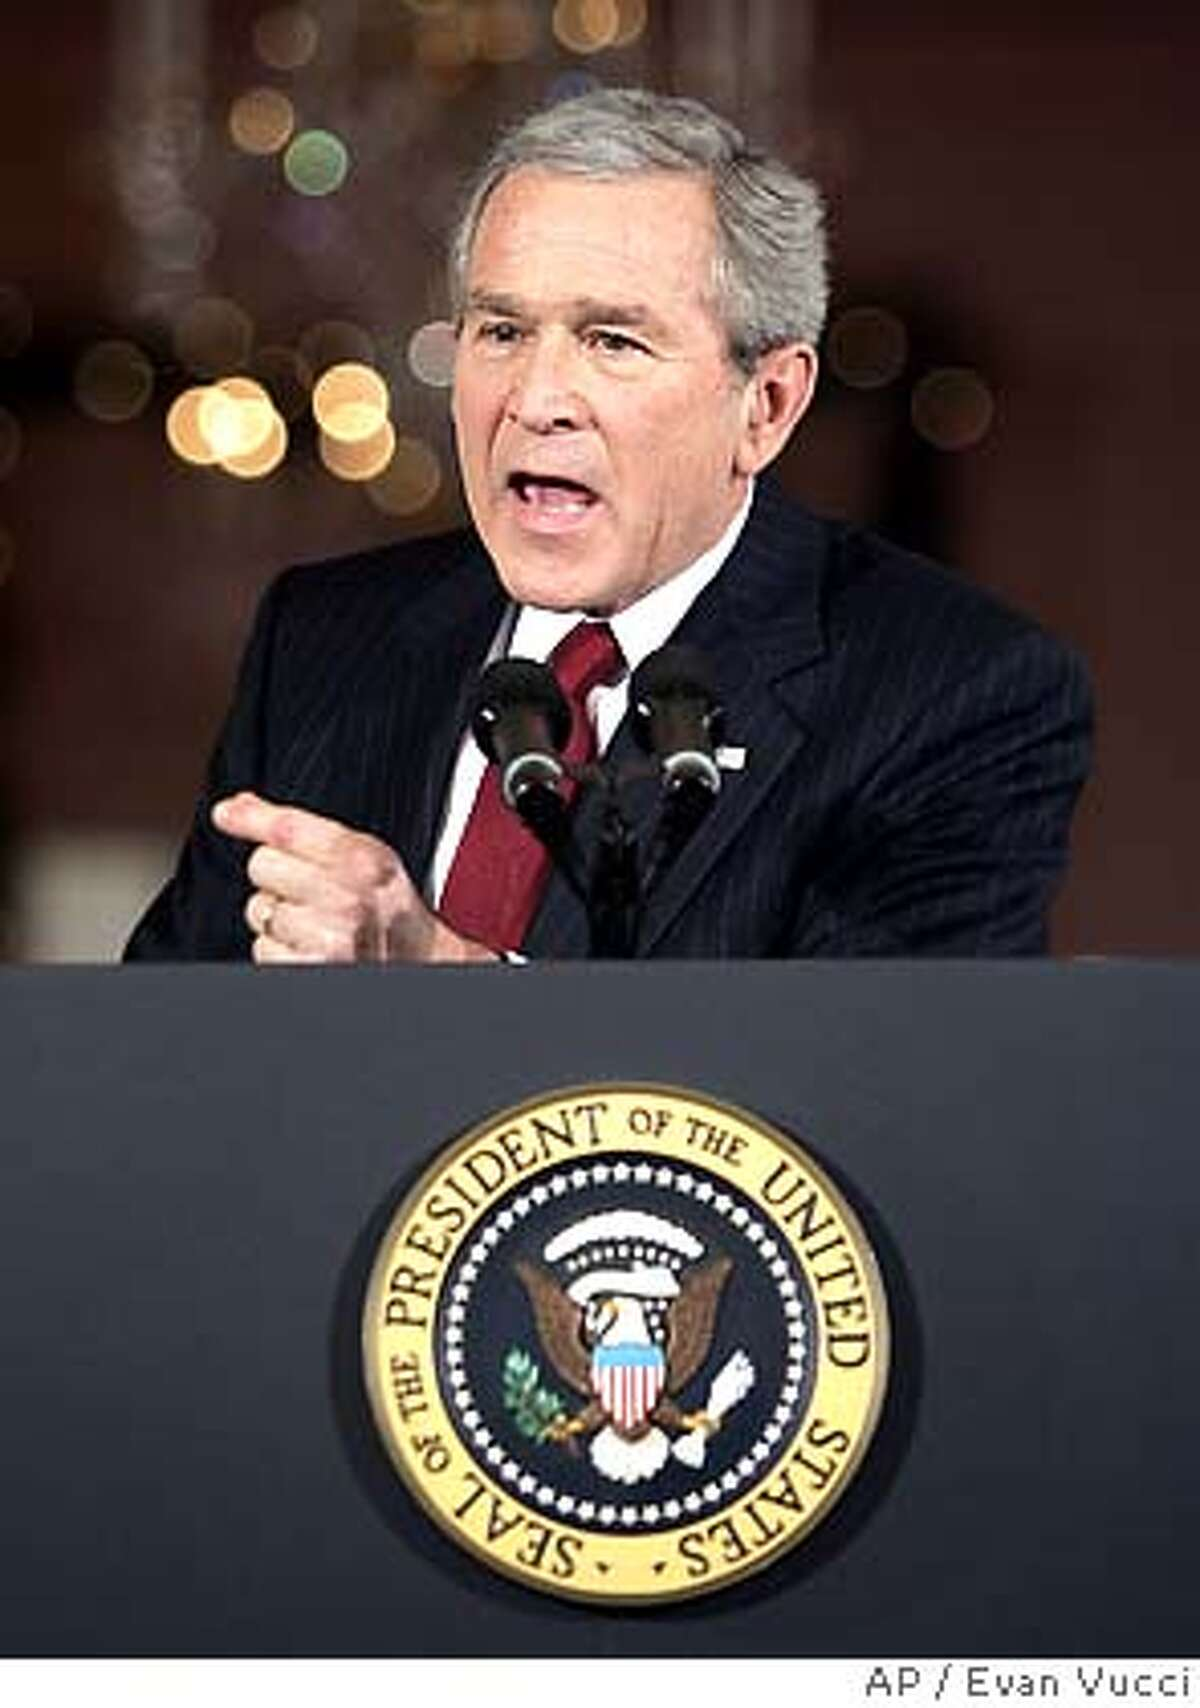 """President Bush gestures during a news conference in the East Room of the White House on Monday, Dec. 19, 2005 in Washington. Bush, brushing aside bipartisan criticism in Congress, said Monday he approved spying on suspected terrorists without court orders because it was """"a necessary part of my job to protect"""" Americans from attack. (AP Photo/Evan Vucci)"""